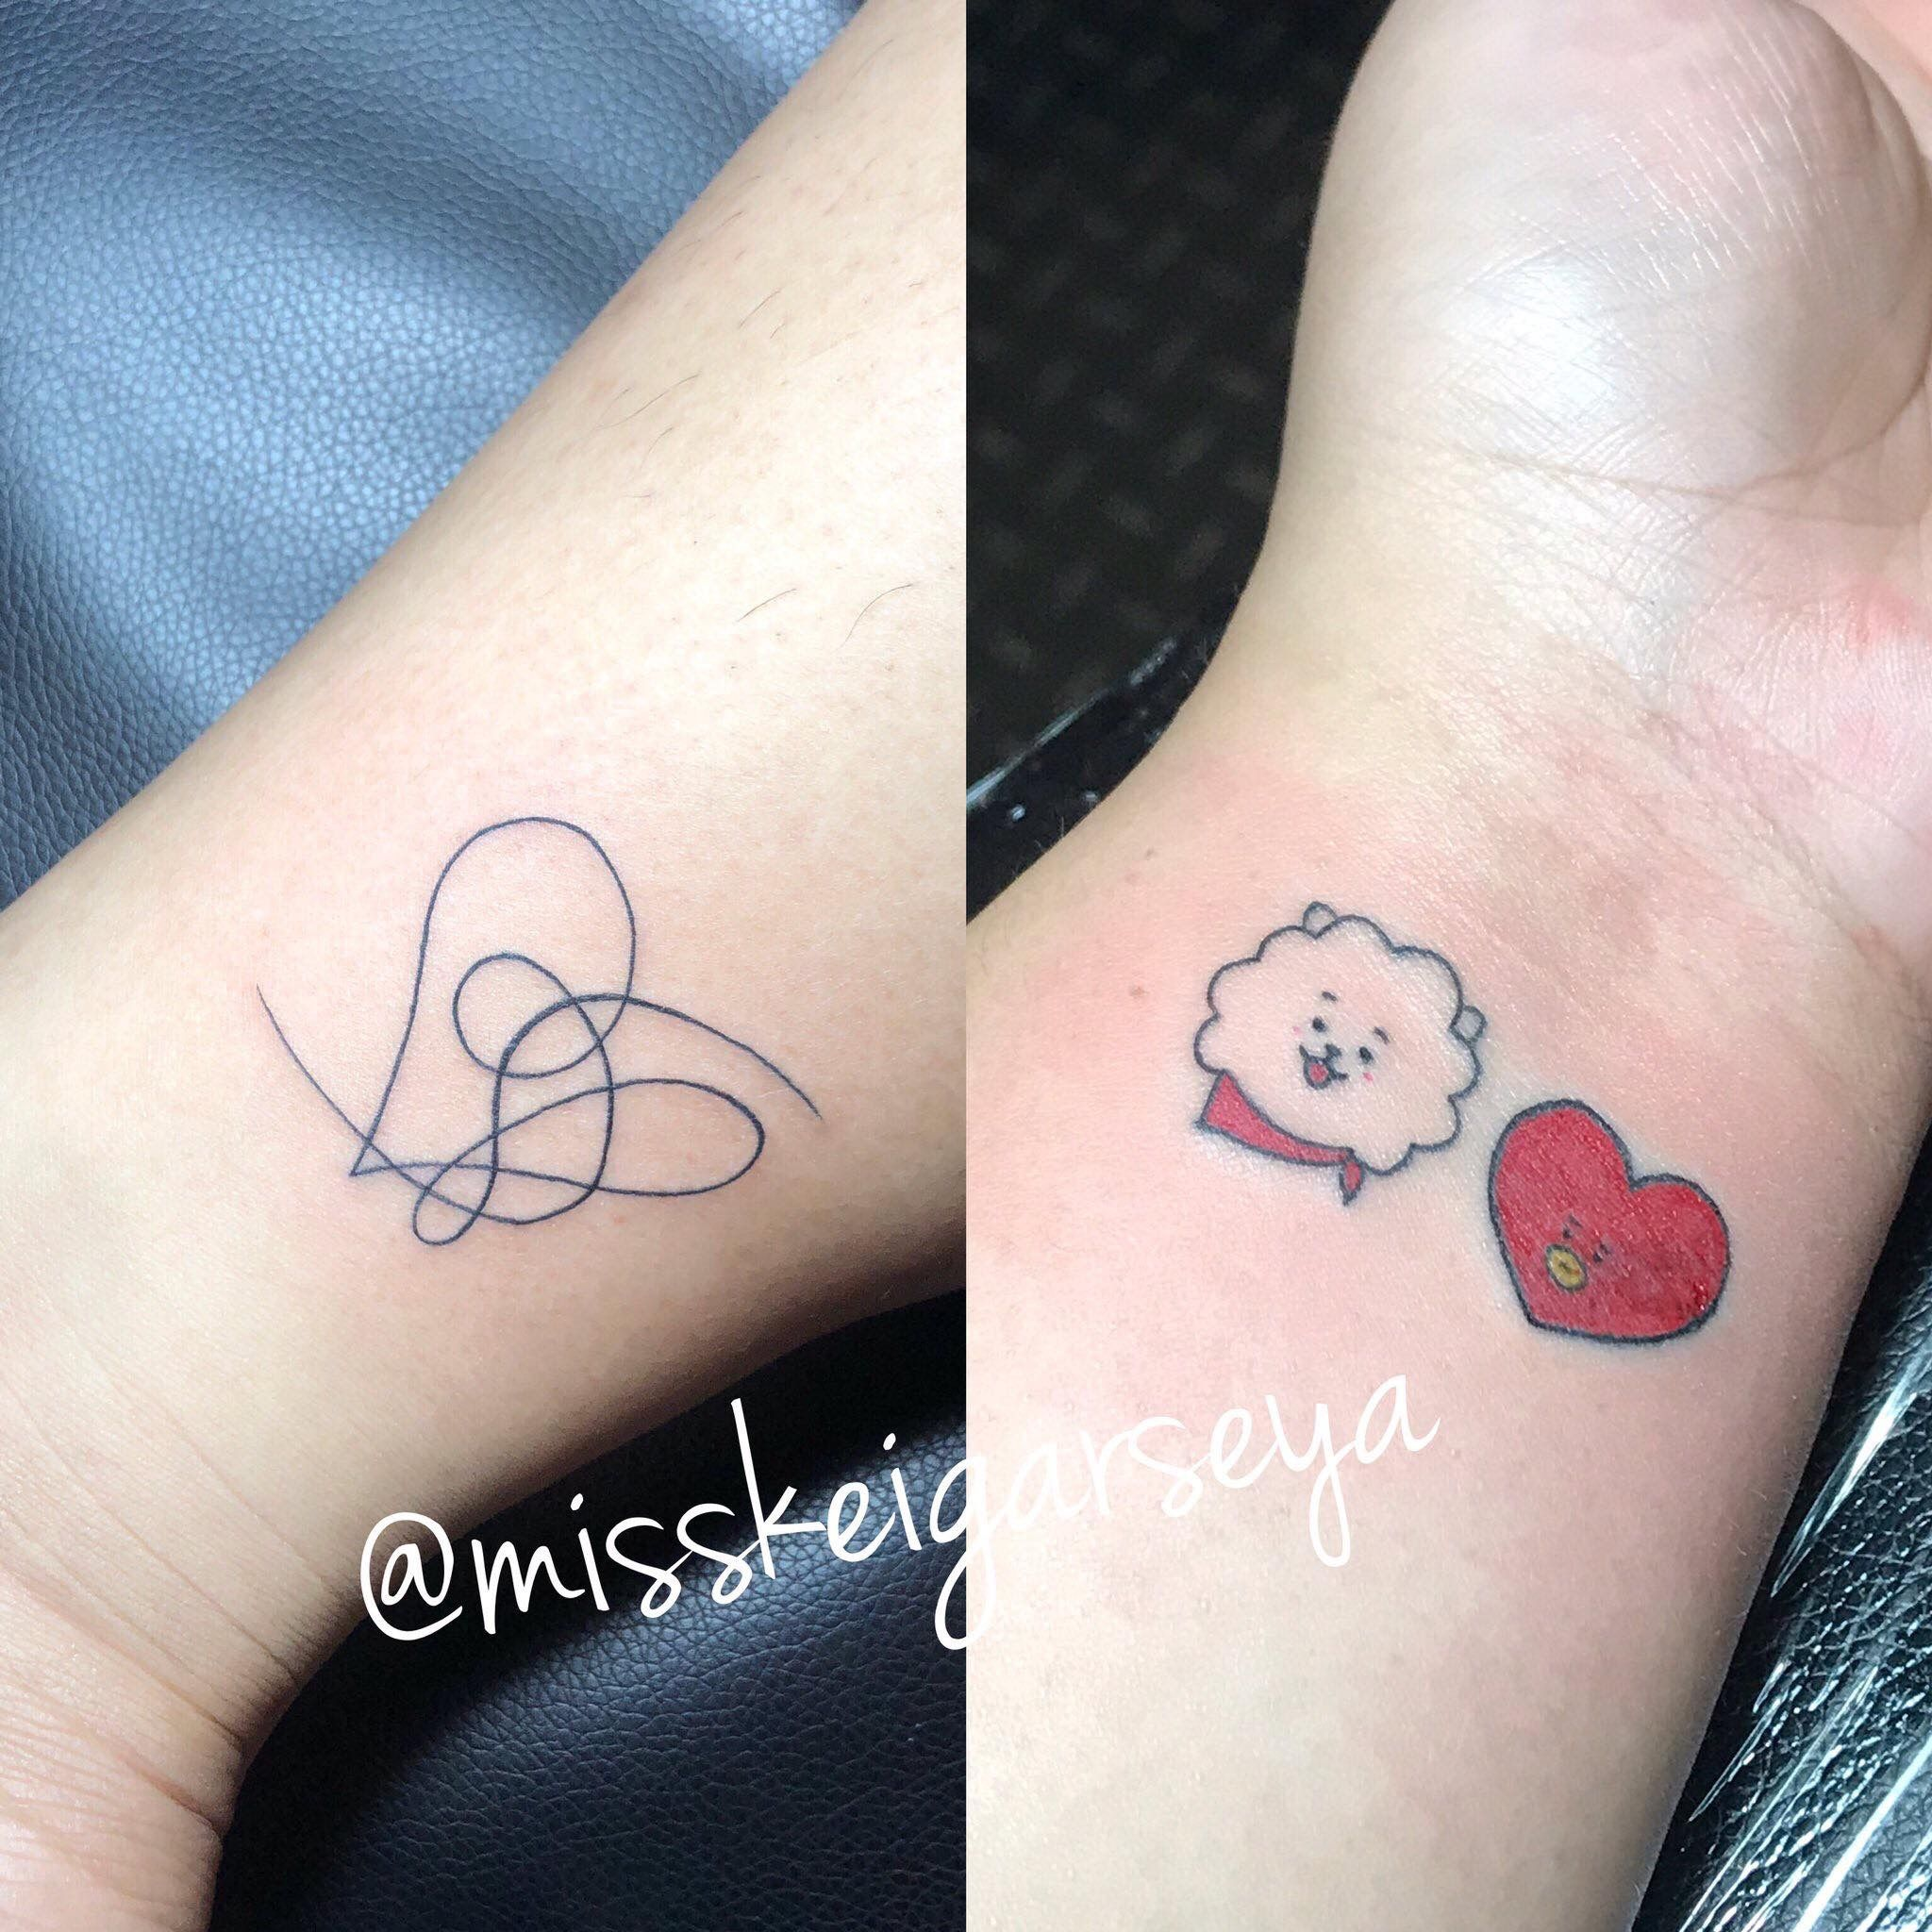 640a8e444 My first BTS x BT21 Tattoo #BTS #BT21 #BTSTATTOO #BT21TATTOO  #LOVEYOURSELFANSWER #RJ #TATA